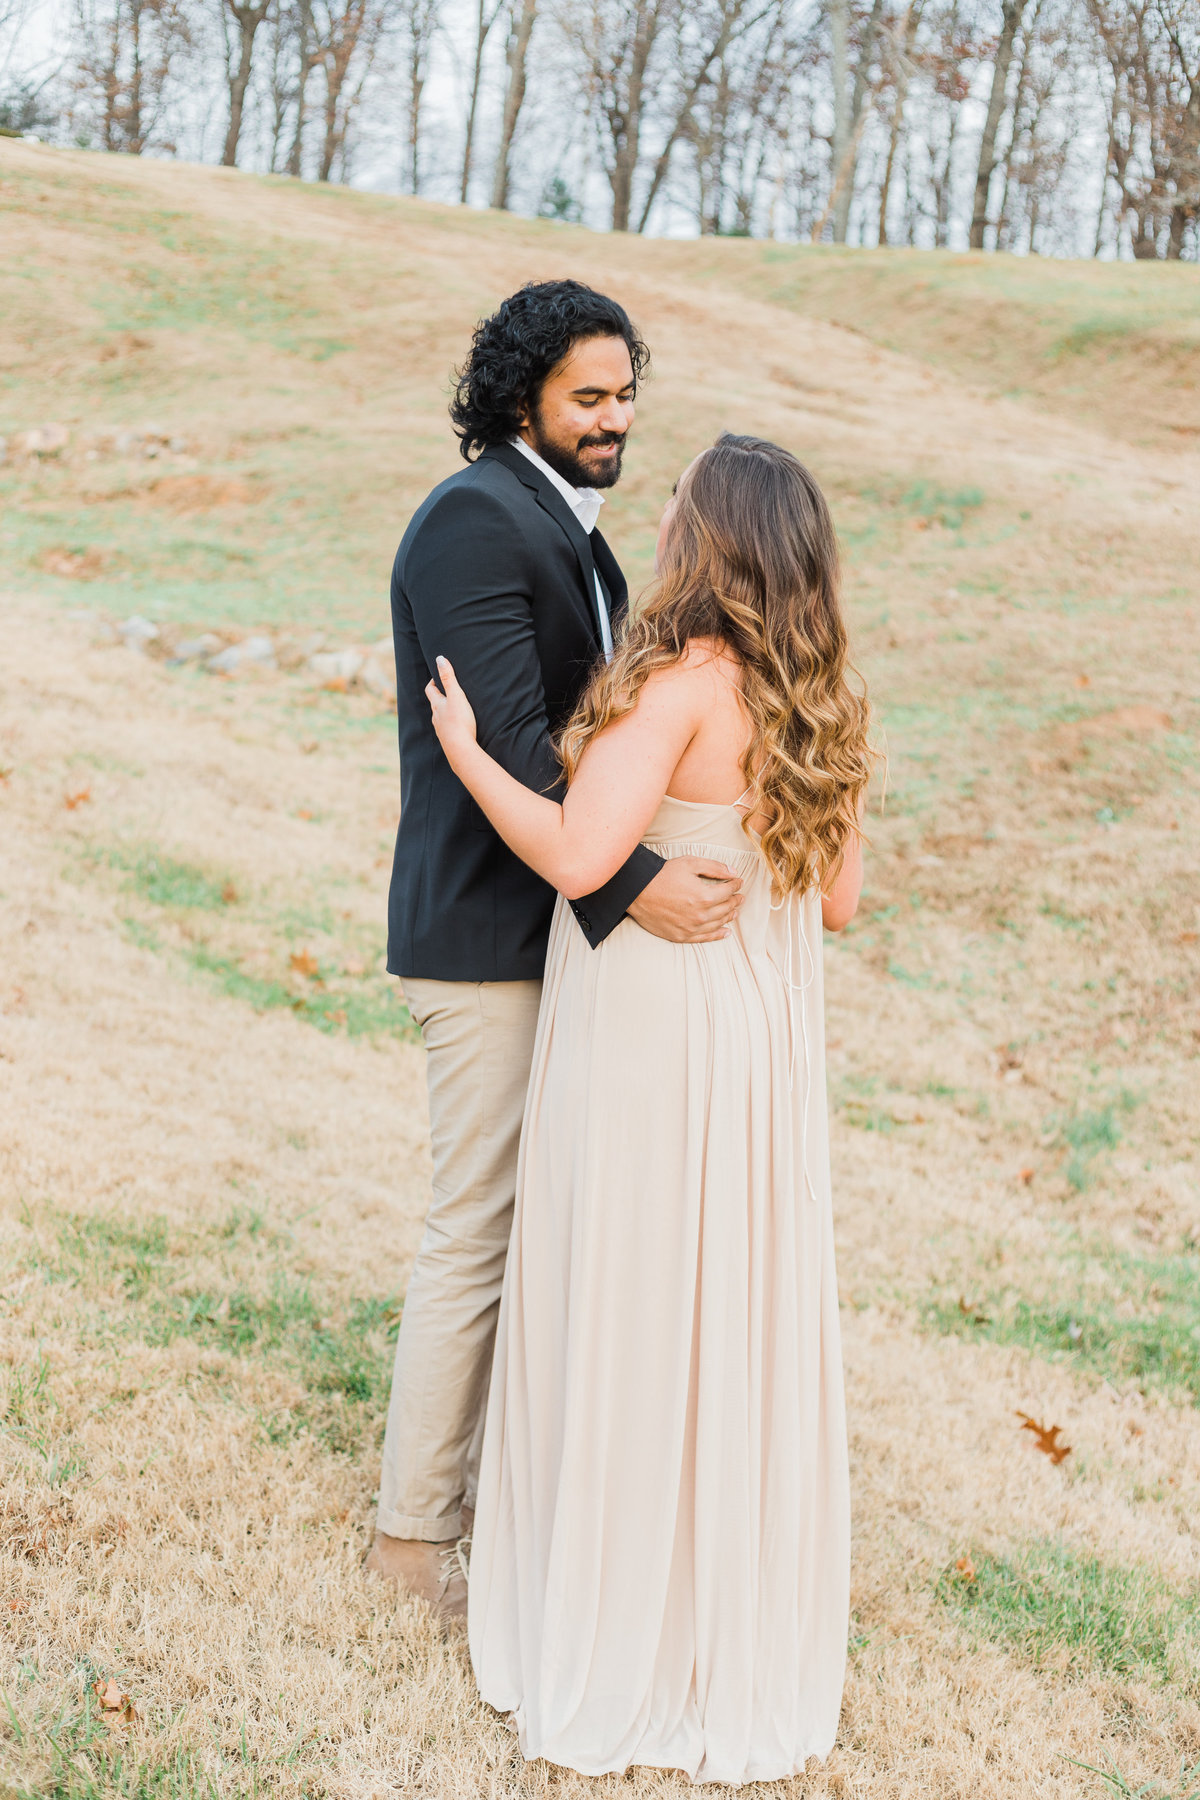 Motaluce Winery, Gainesville, GA Couple Engagement Anniversary Photography Session by Renee Jael-25